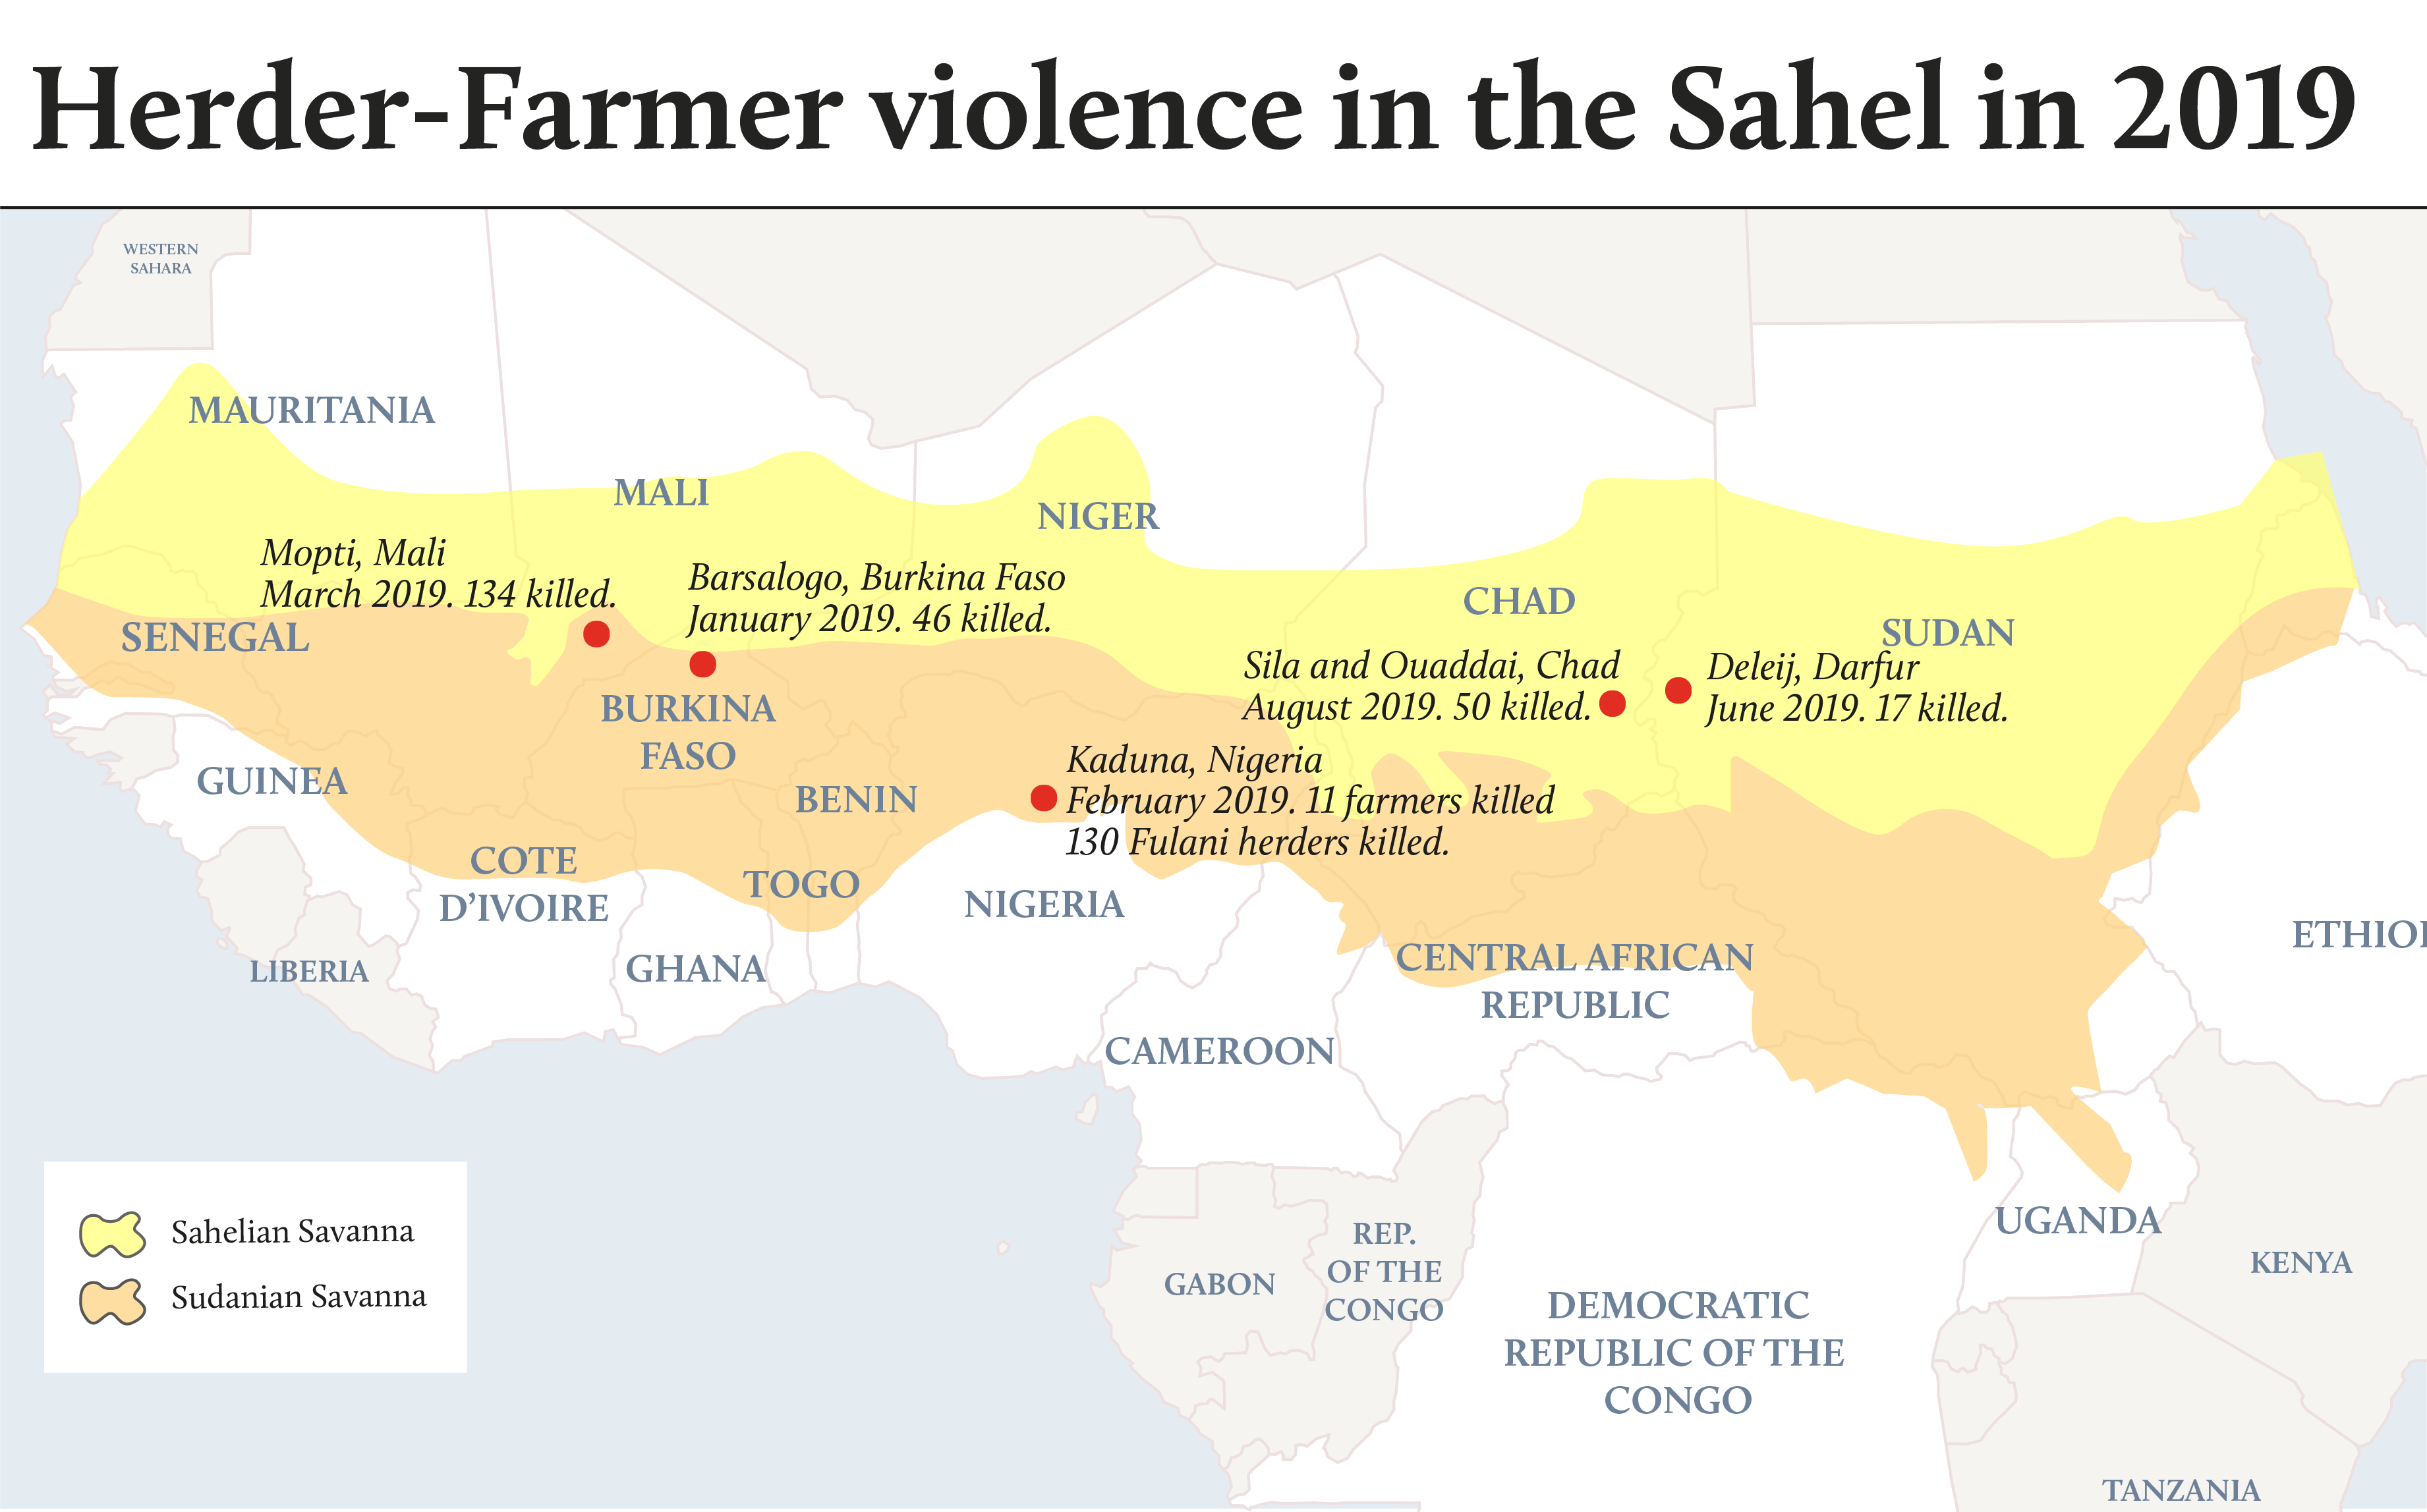 Violence in the Sahel